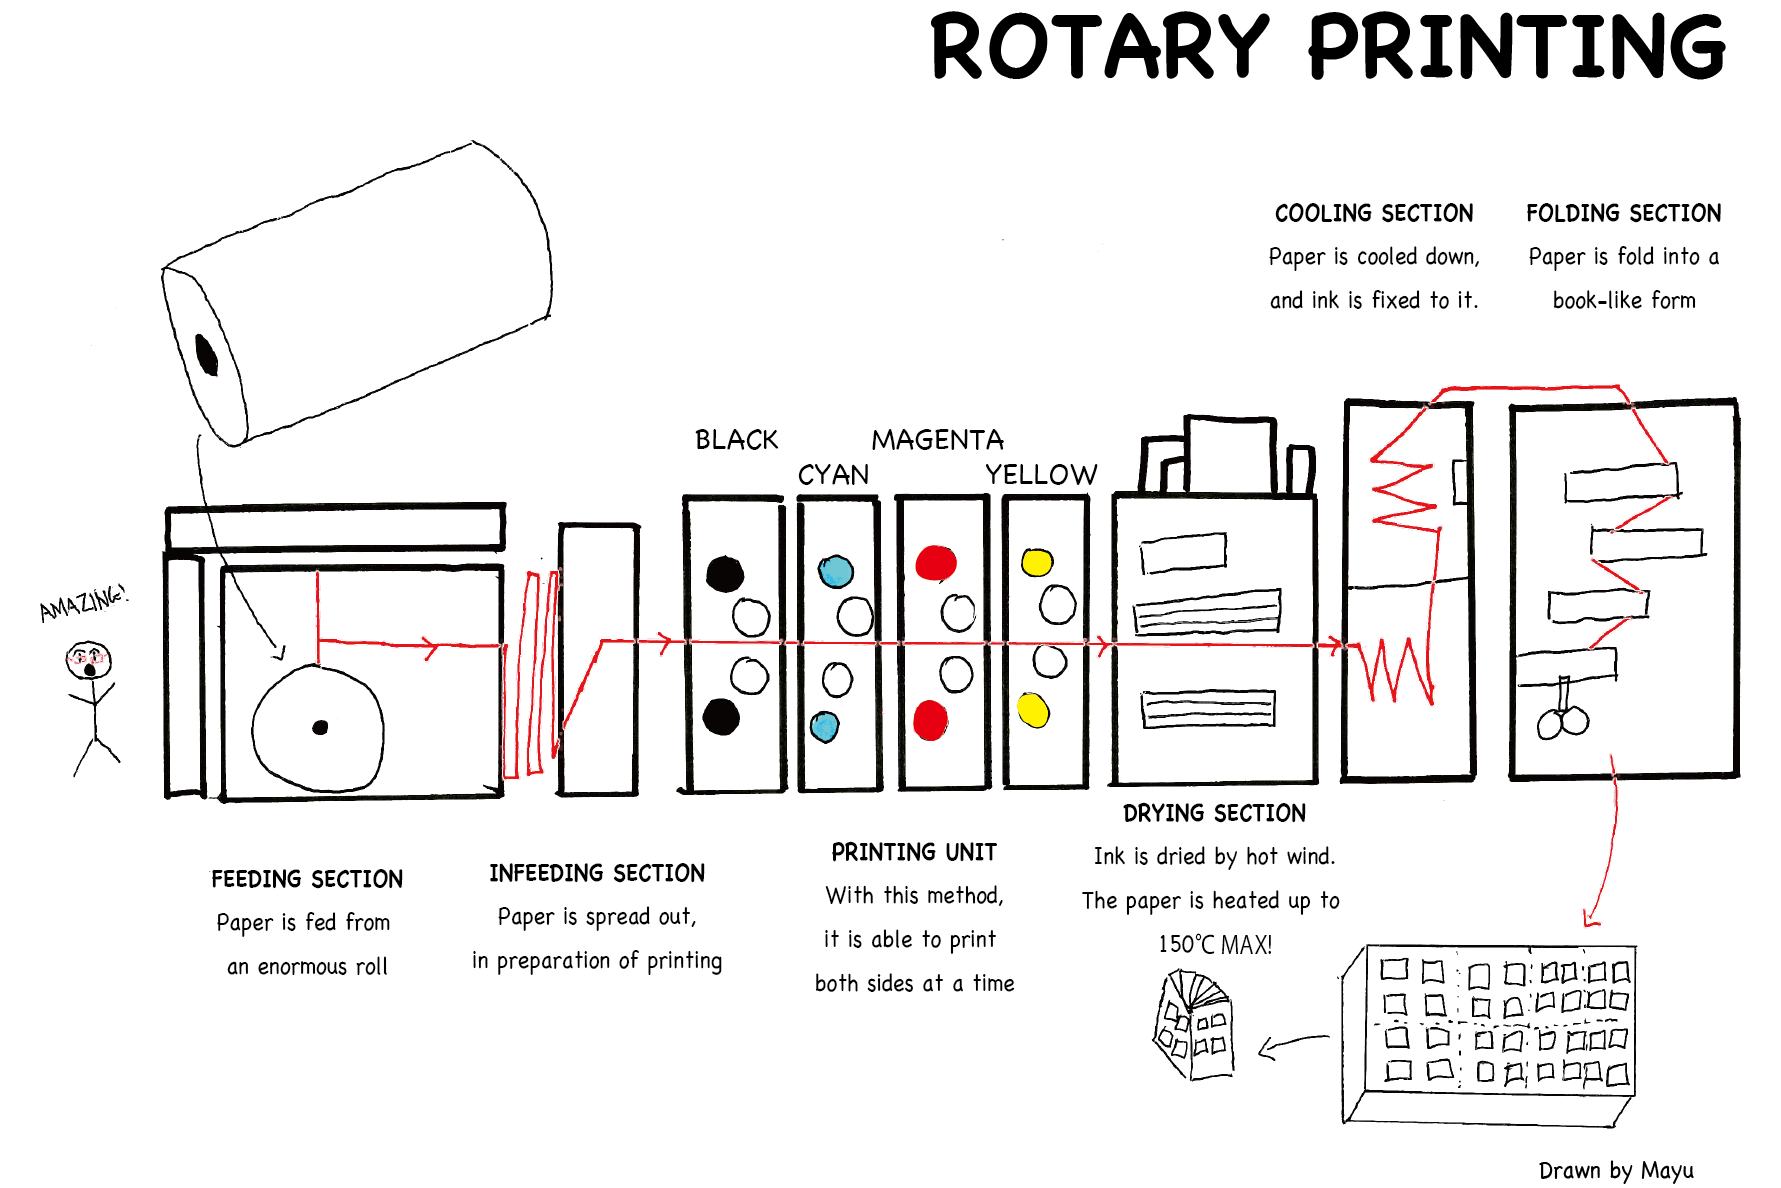 Here's a diagram of Rotary Printing!